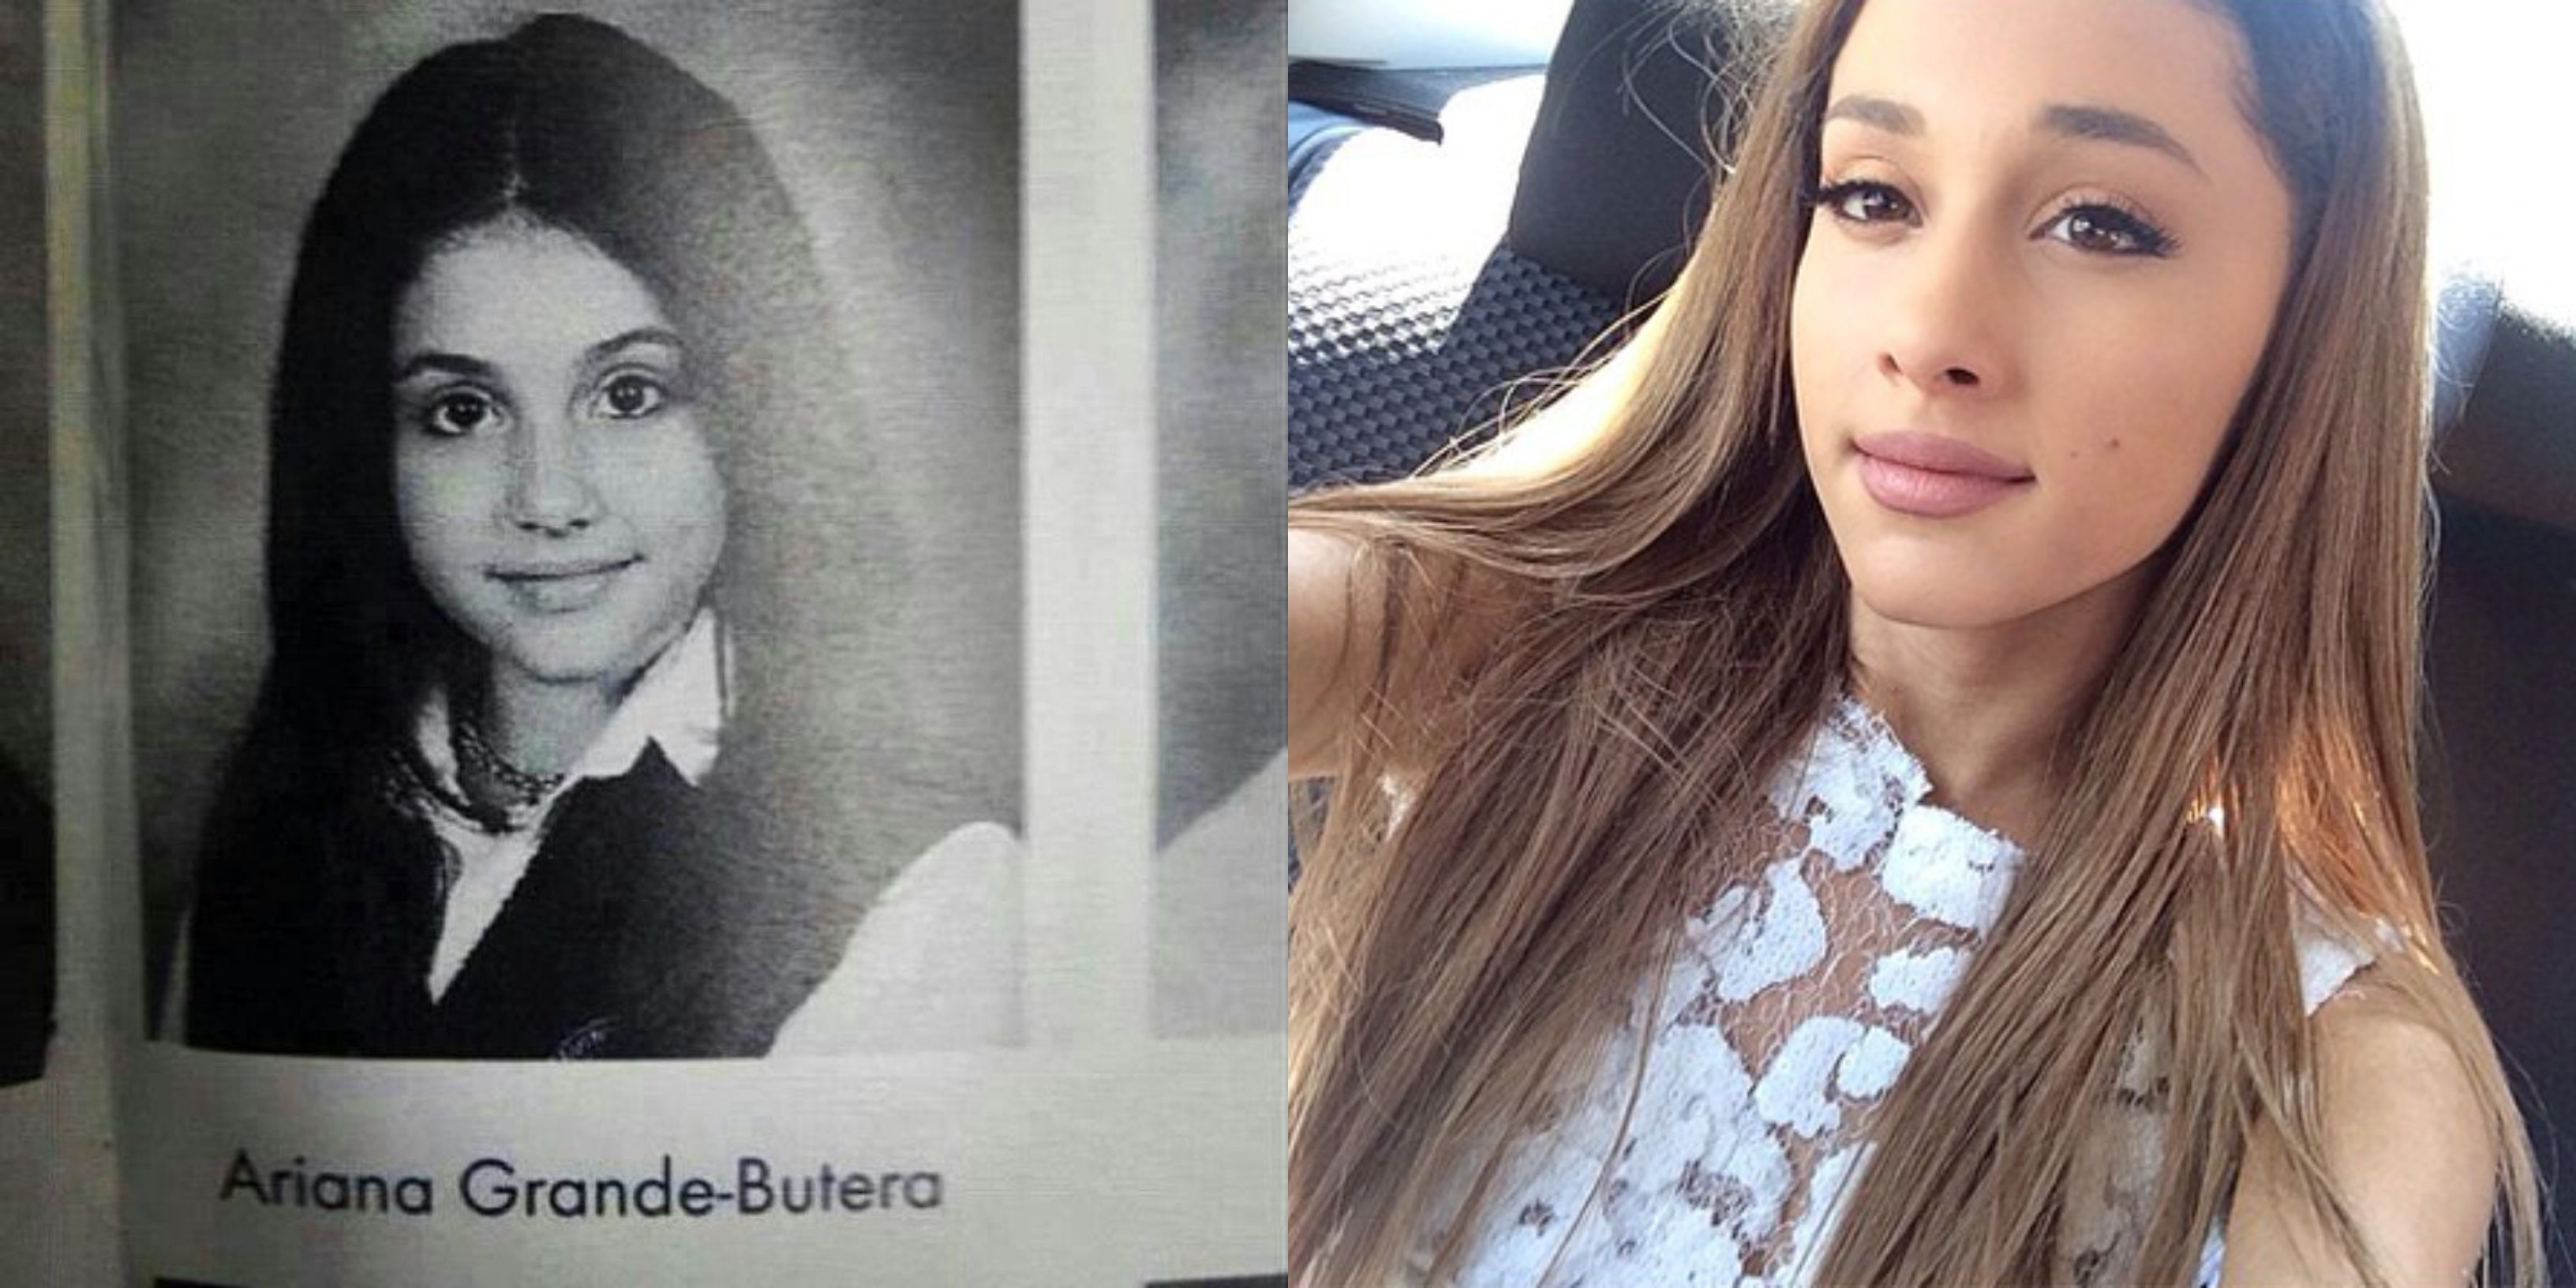 10 Celebrity Yearbook Photos That Are Absolutely Unrecognizable